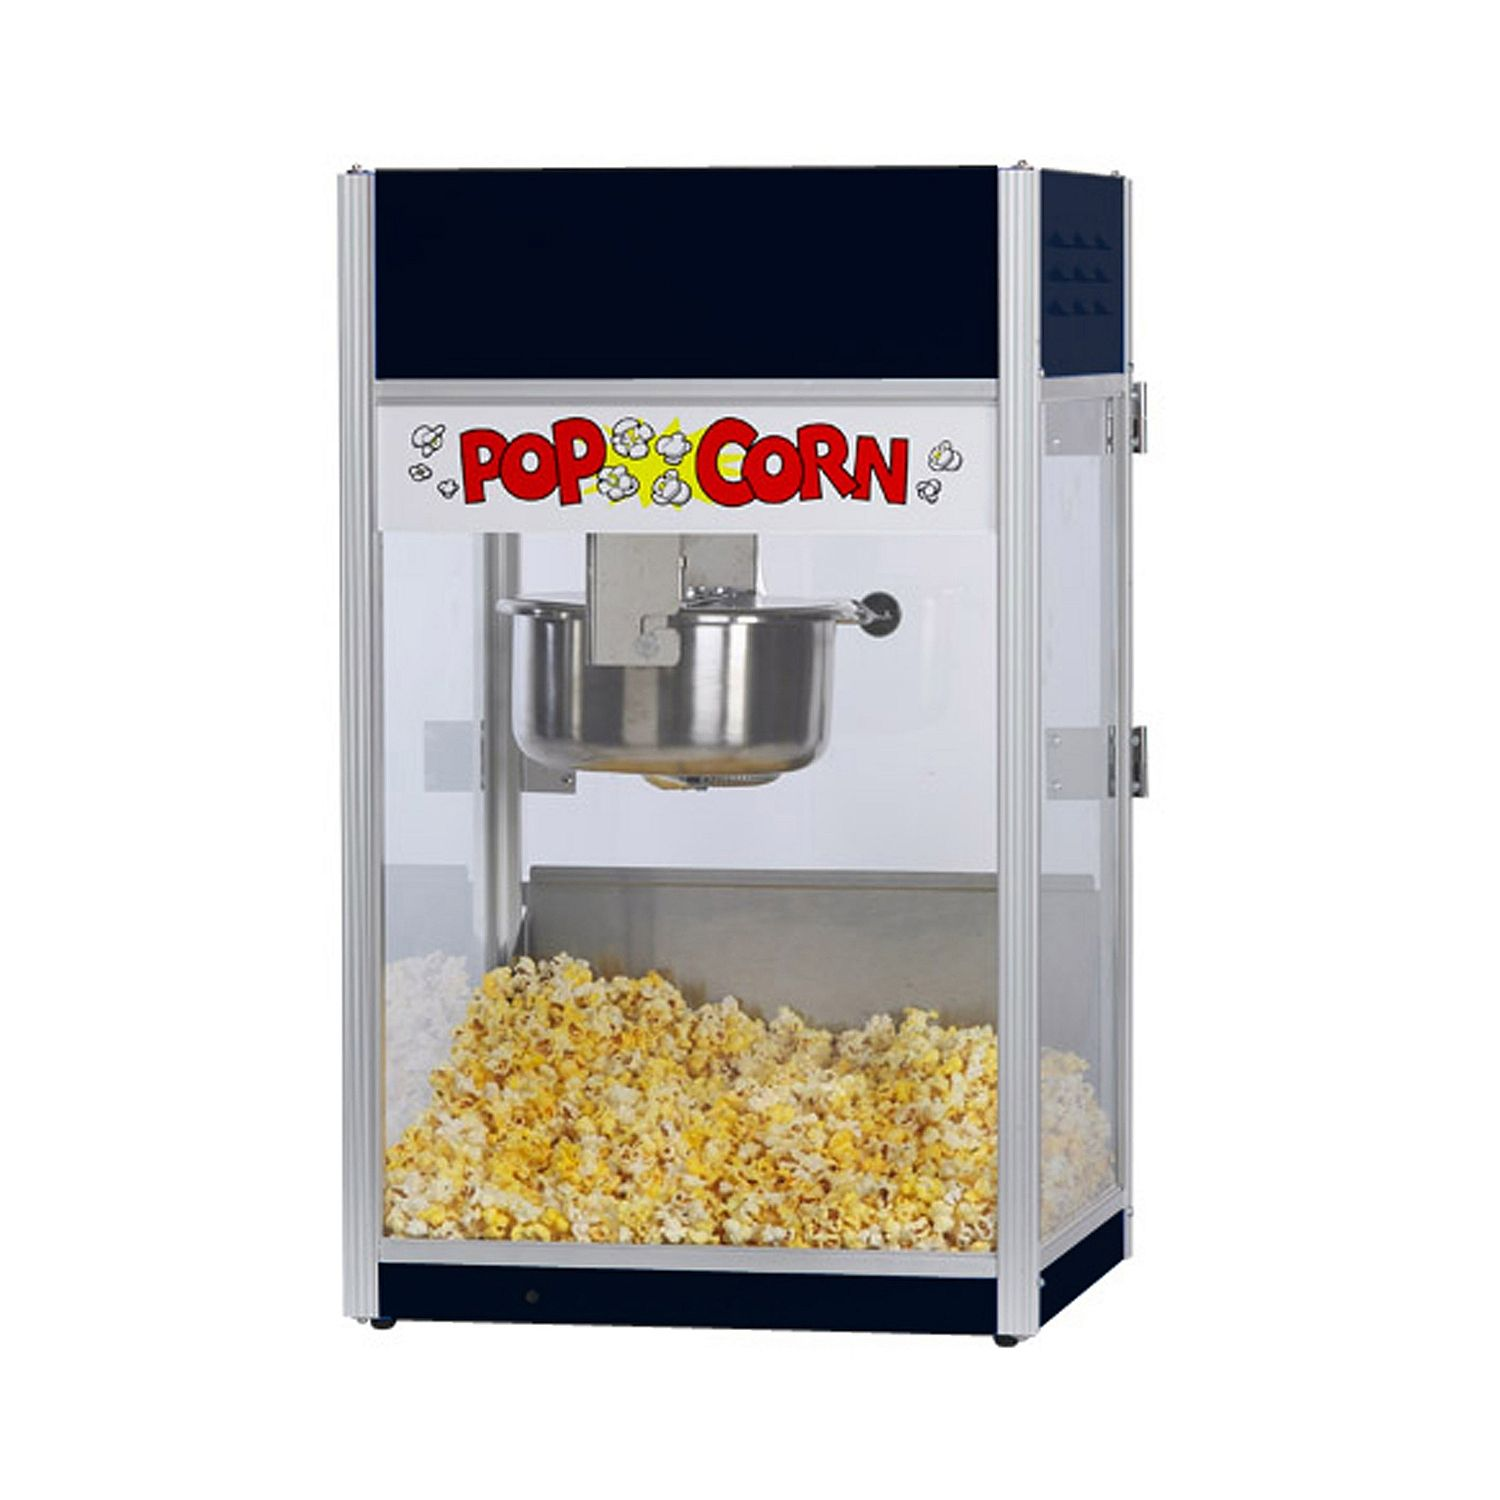 6oz popcorn machine